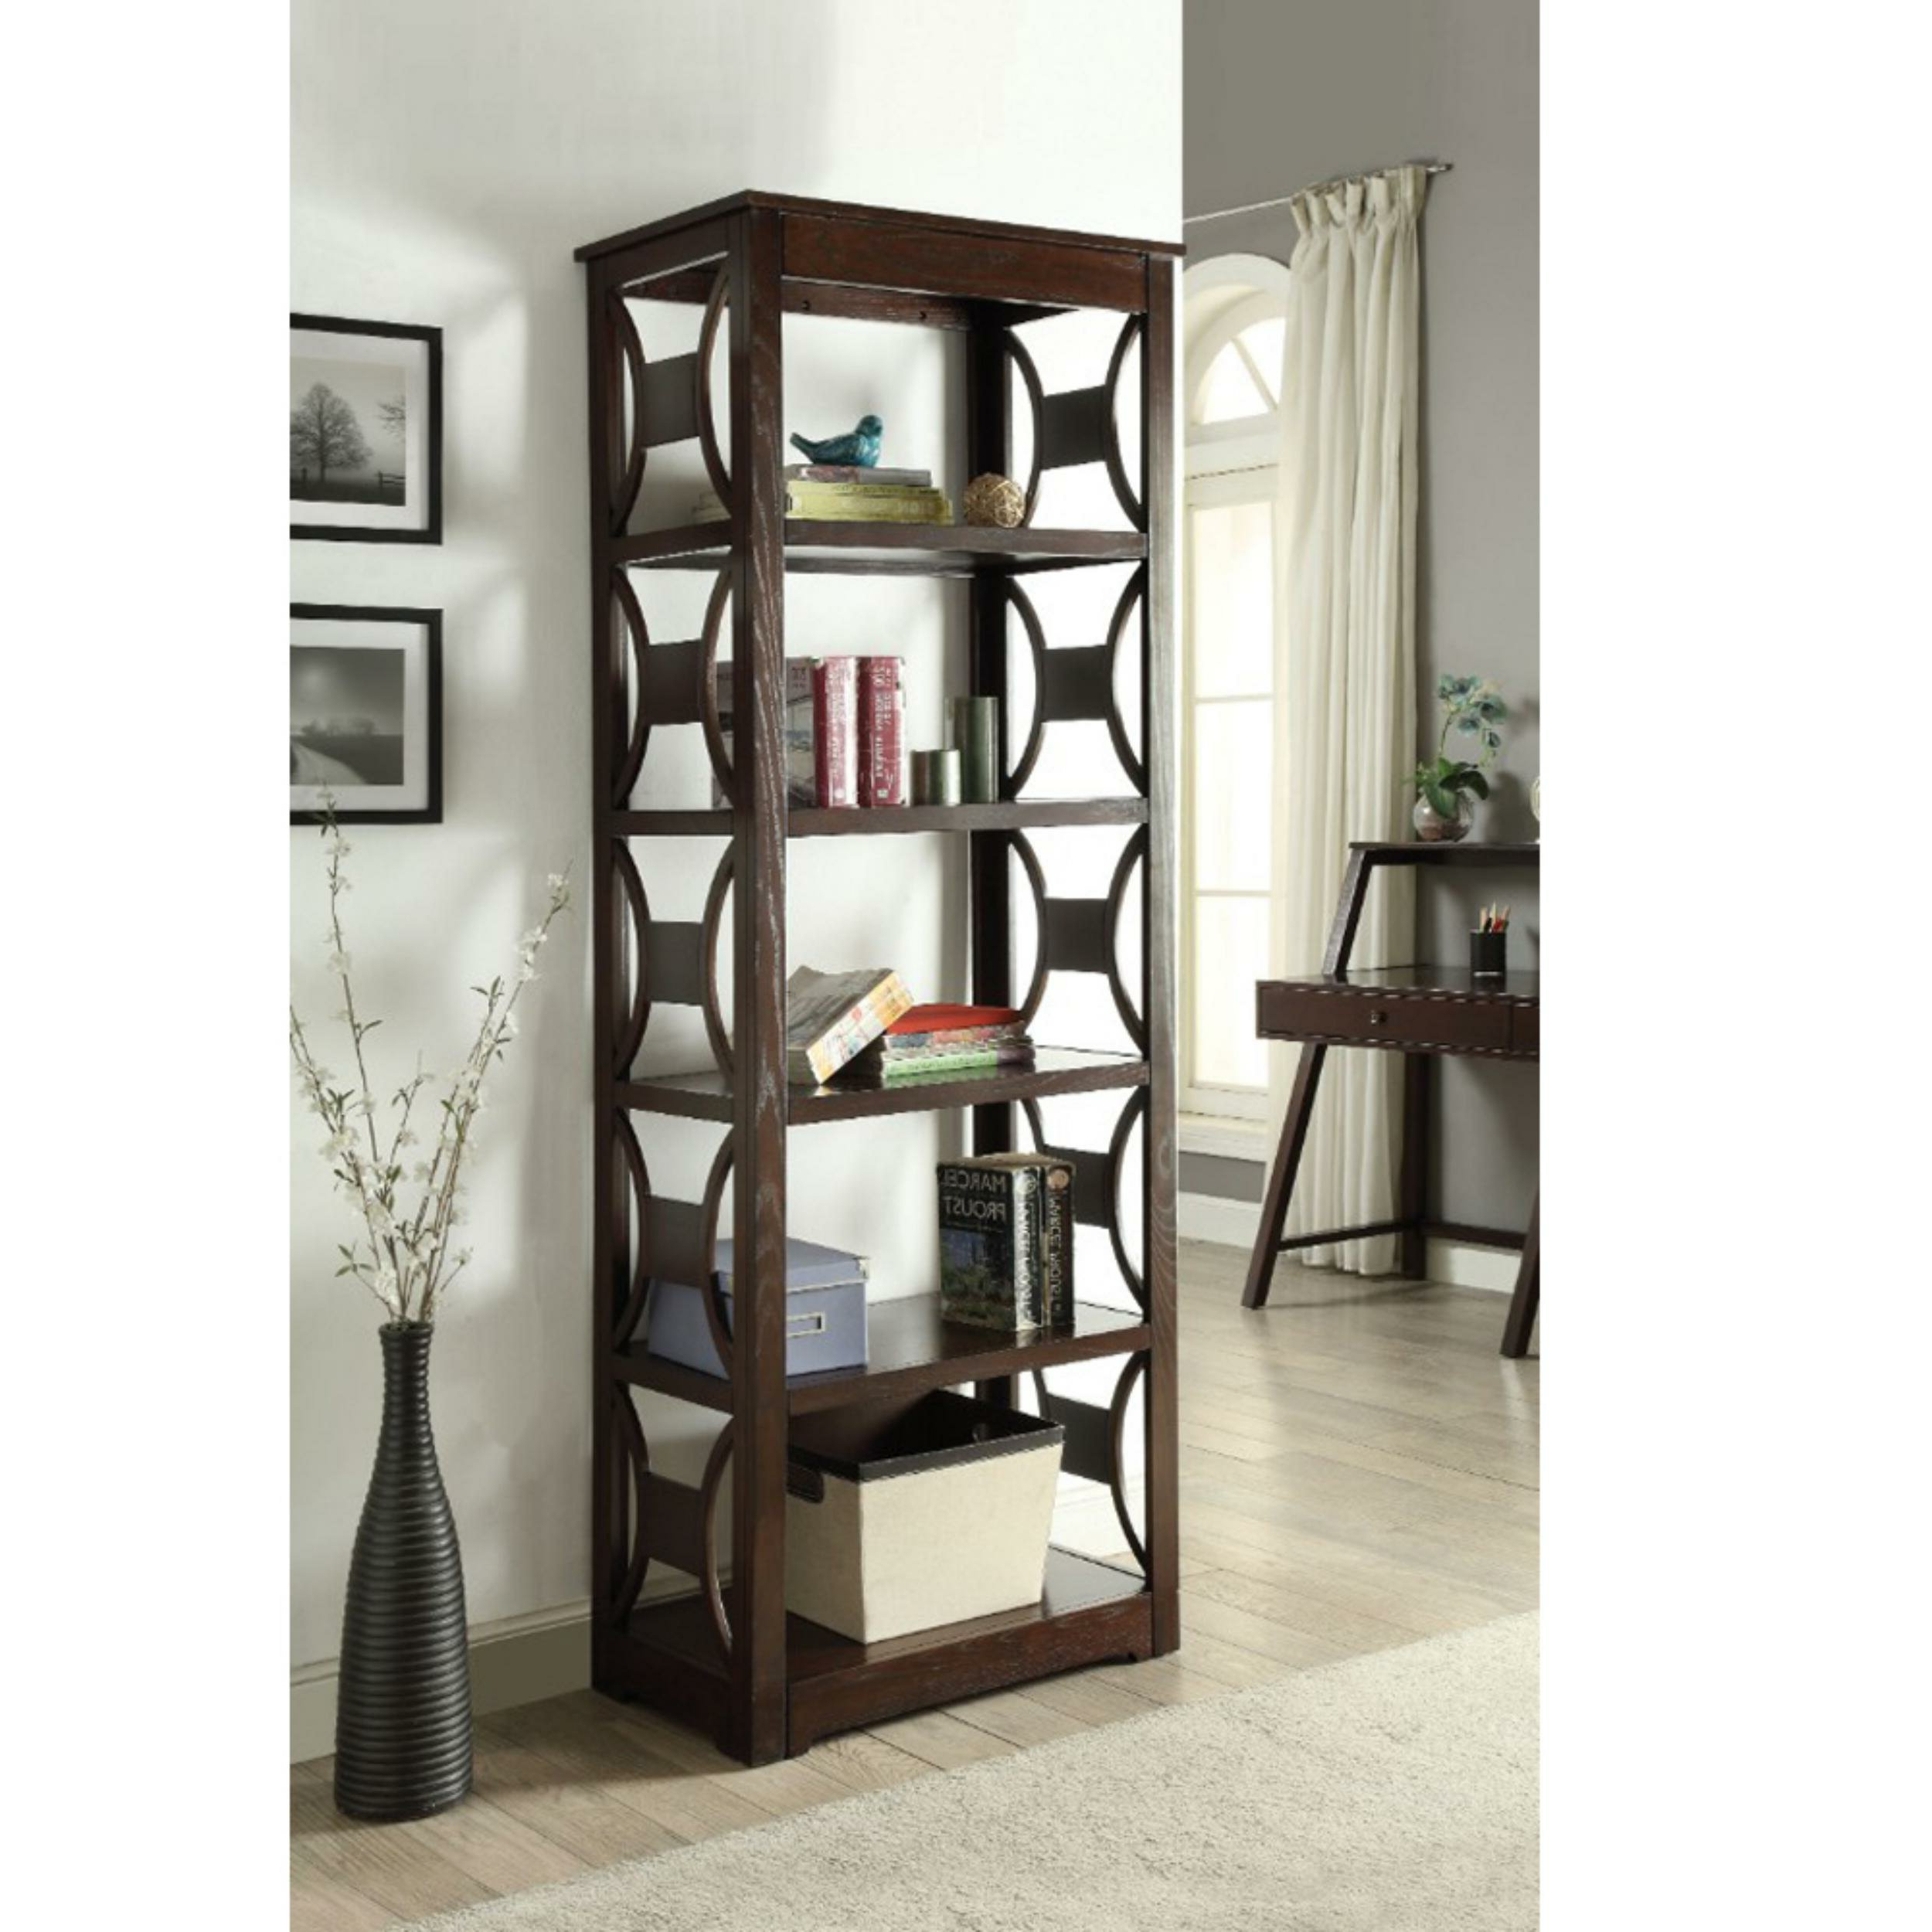 Gladstone Etagere Bookcases Intended For Newest Stegmair Wooden Etagere Bookcase (View 12 of 20)